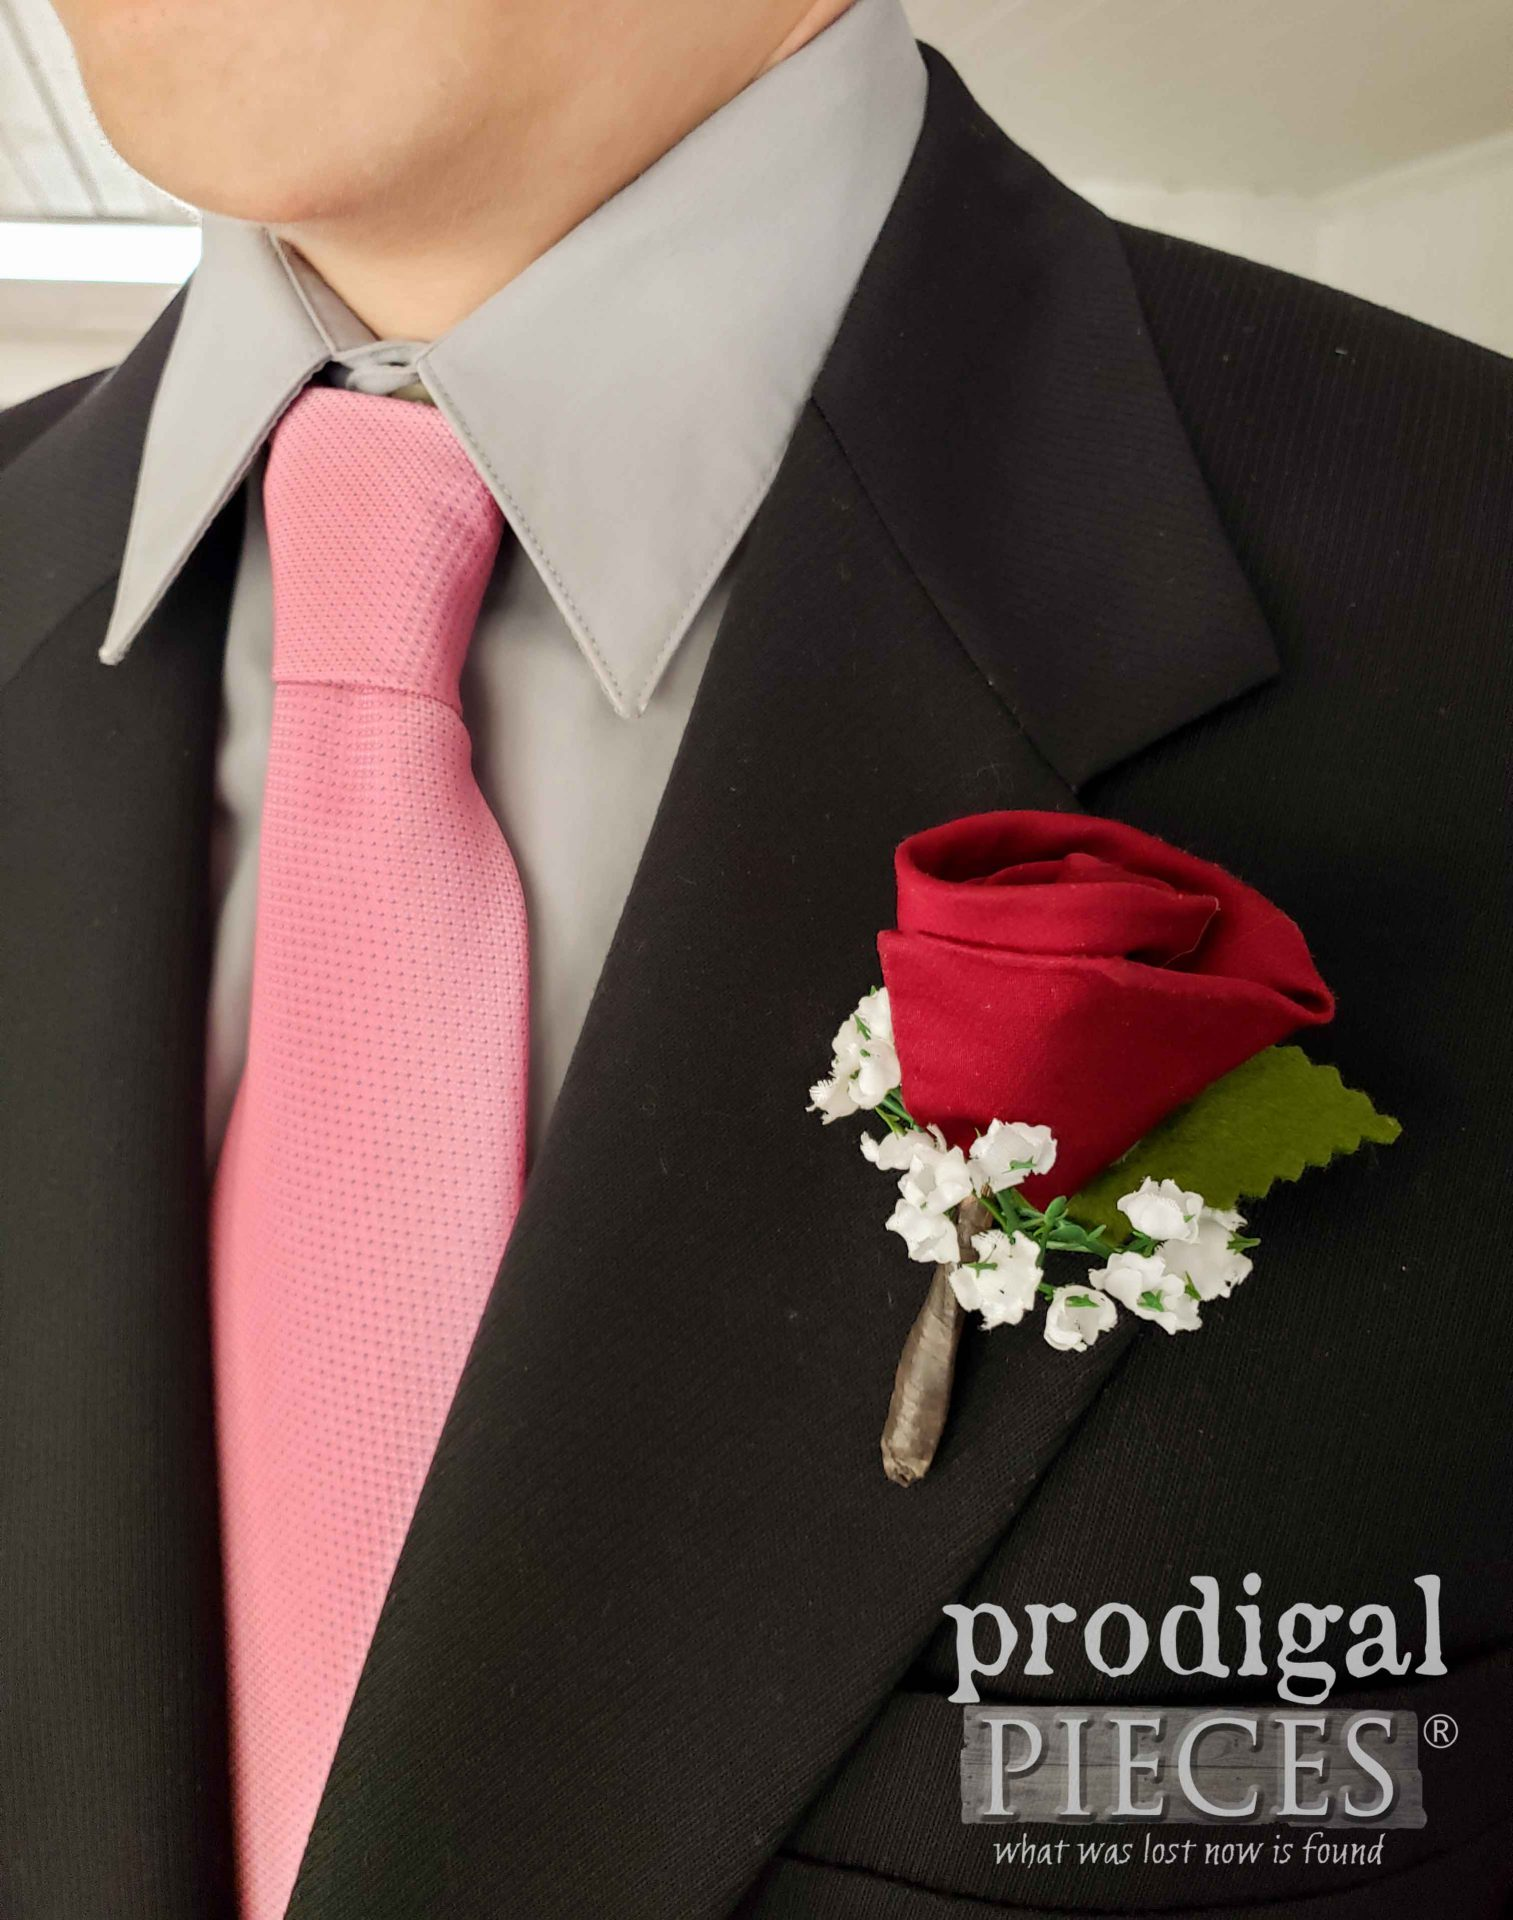 DIY Rosebud Boutonniere from Upcycled Necktie by Larissa of Prodigal Pieces | prodigalpieces.com #prodigalpieces #diy #handmade #fathersday #dad #wedding